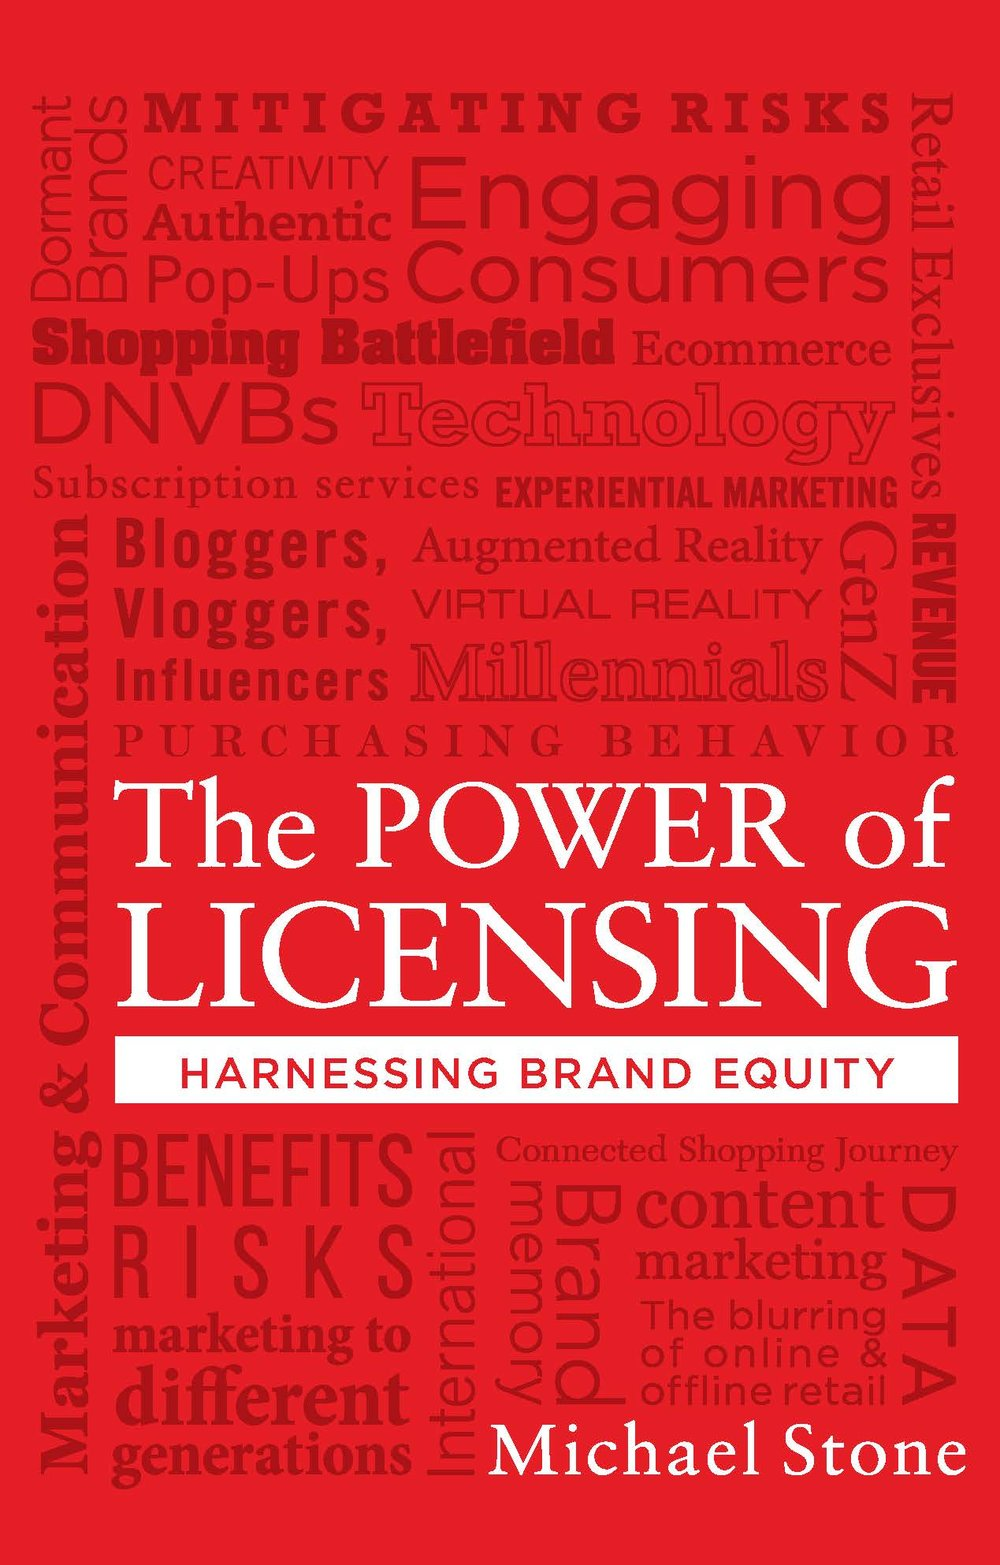 PowerOfLicensing_TOC.red cover IMAGE_Page_1.jpg